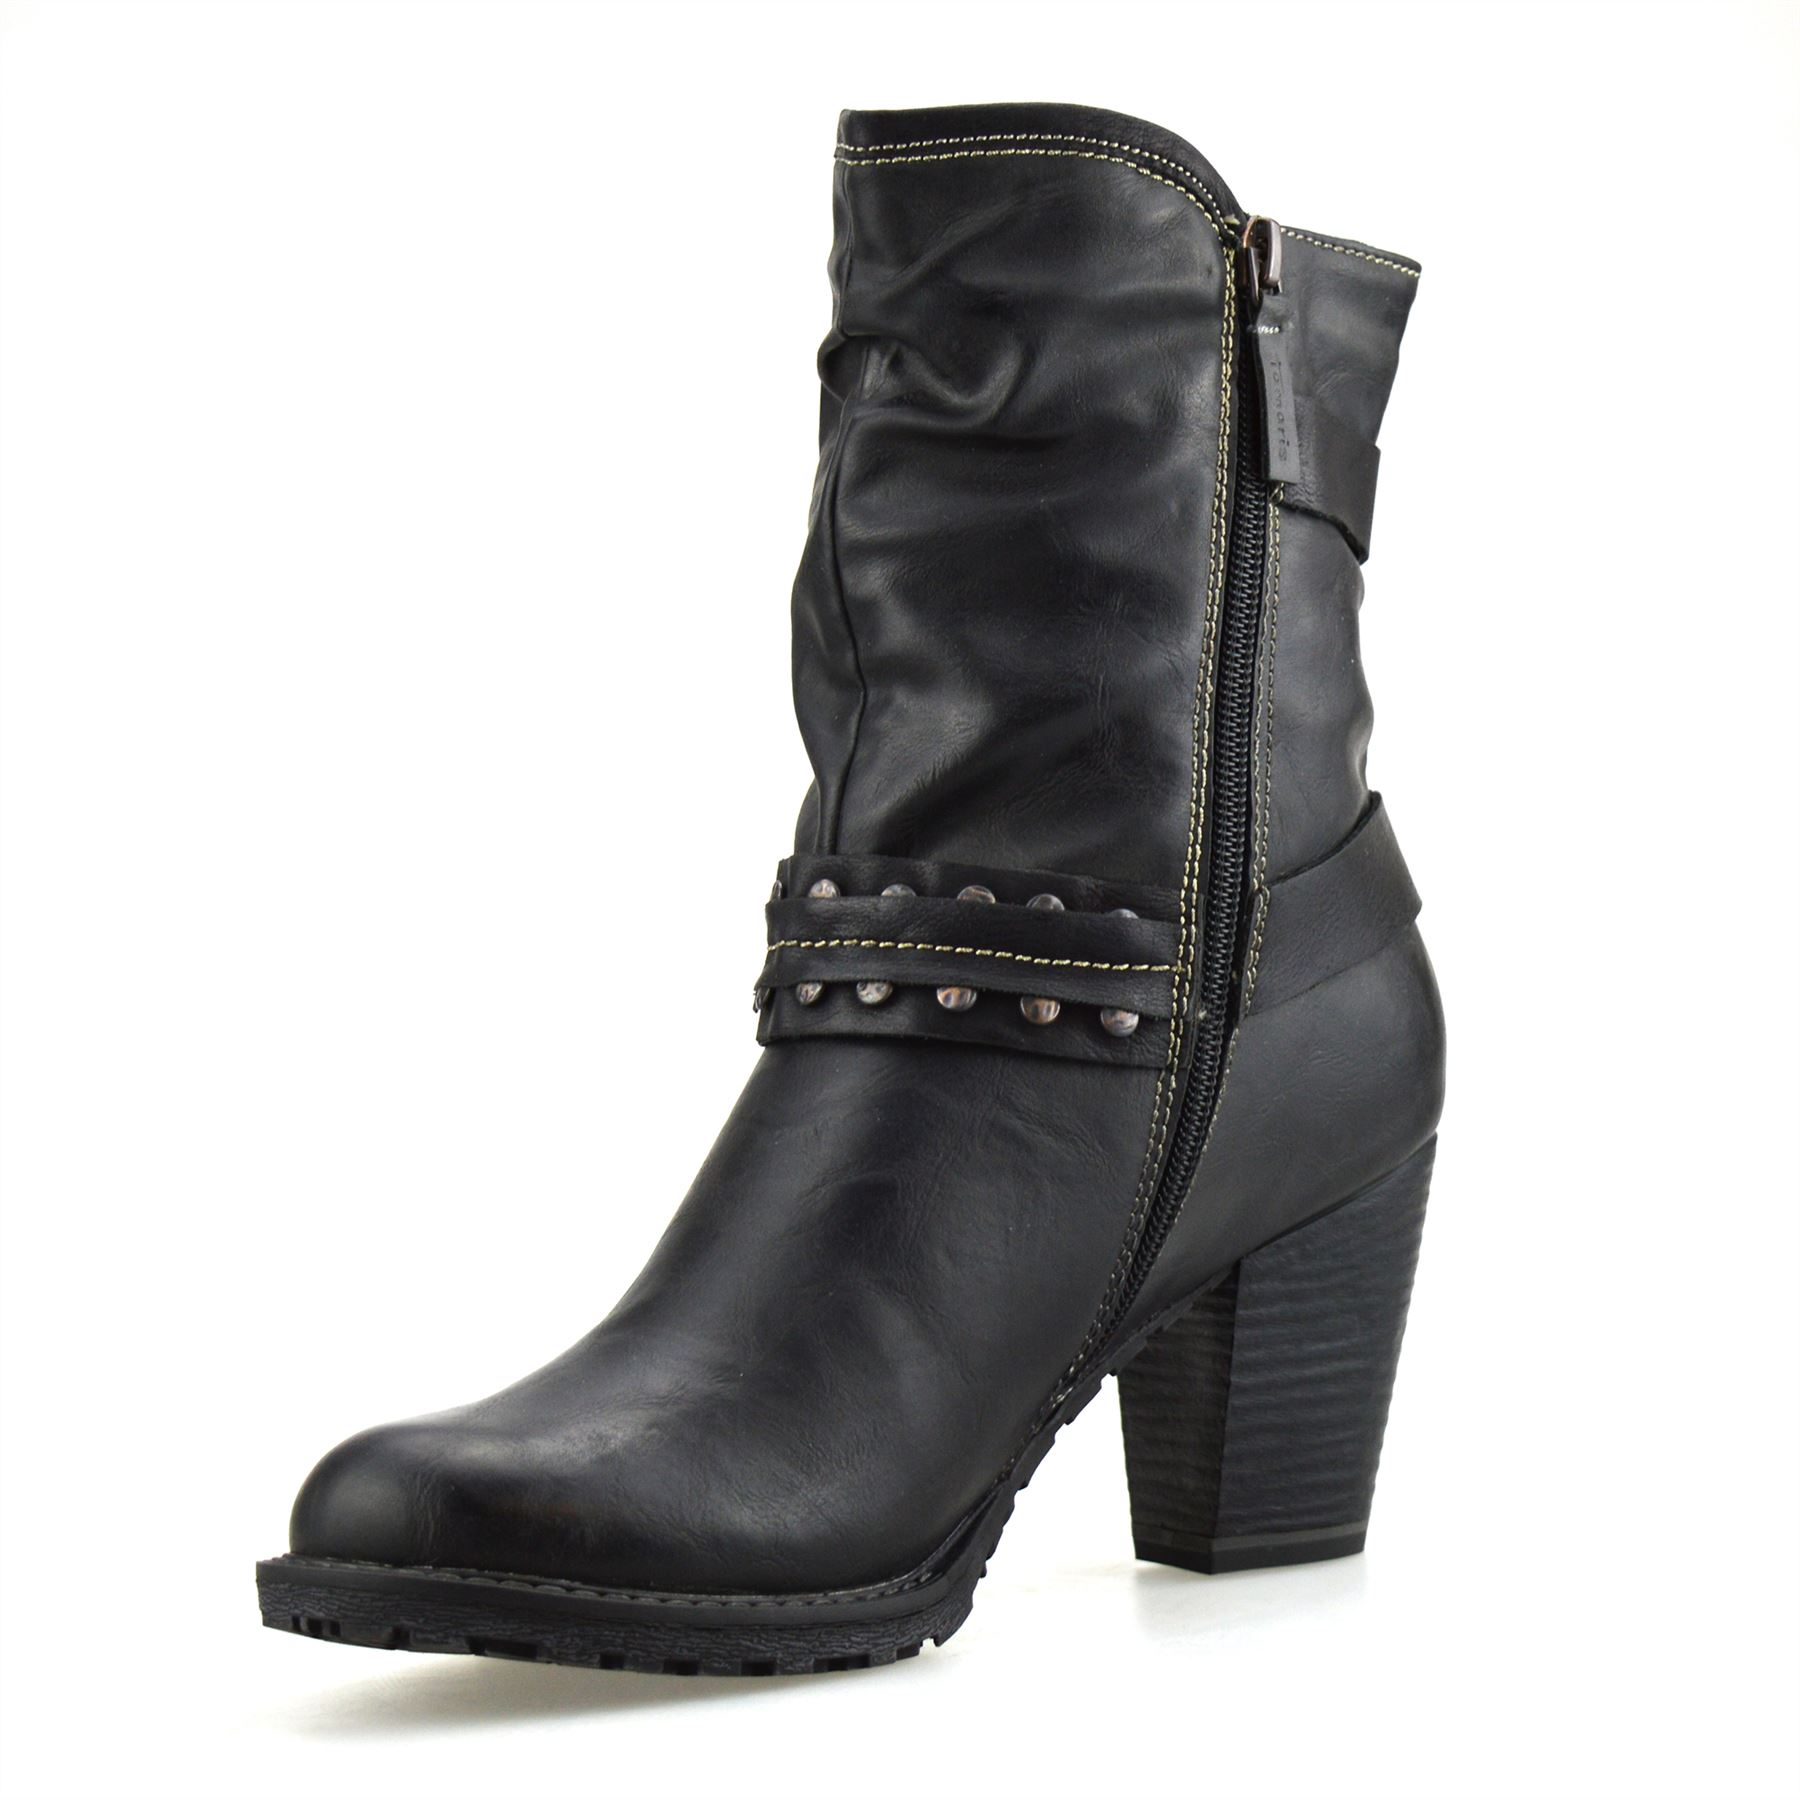 ladies womens mid block heel buckle zip up ankle cowboy biker boots shoes size ebay. Black Bedroom Furniture Sets. Home Design Ideas